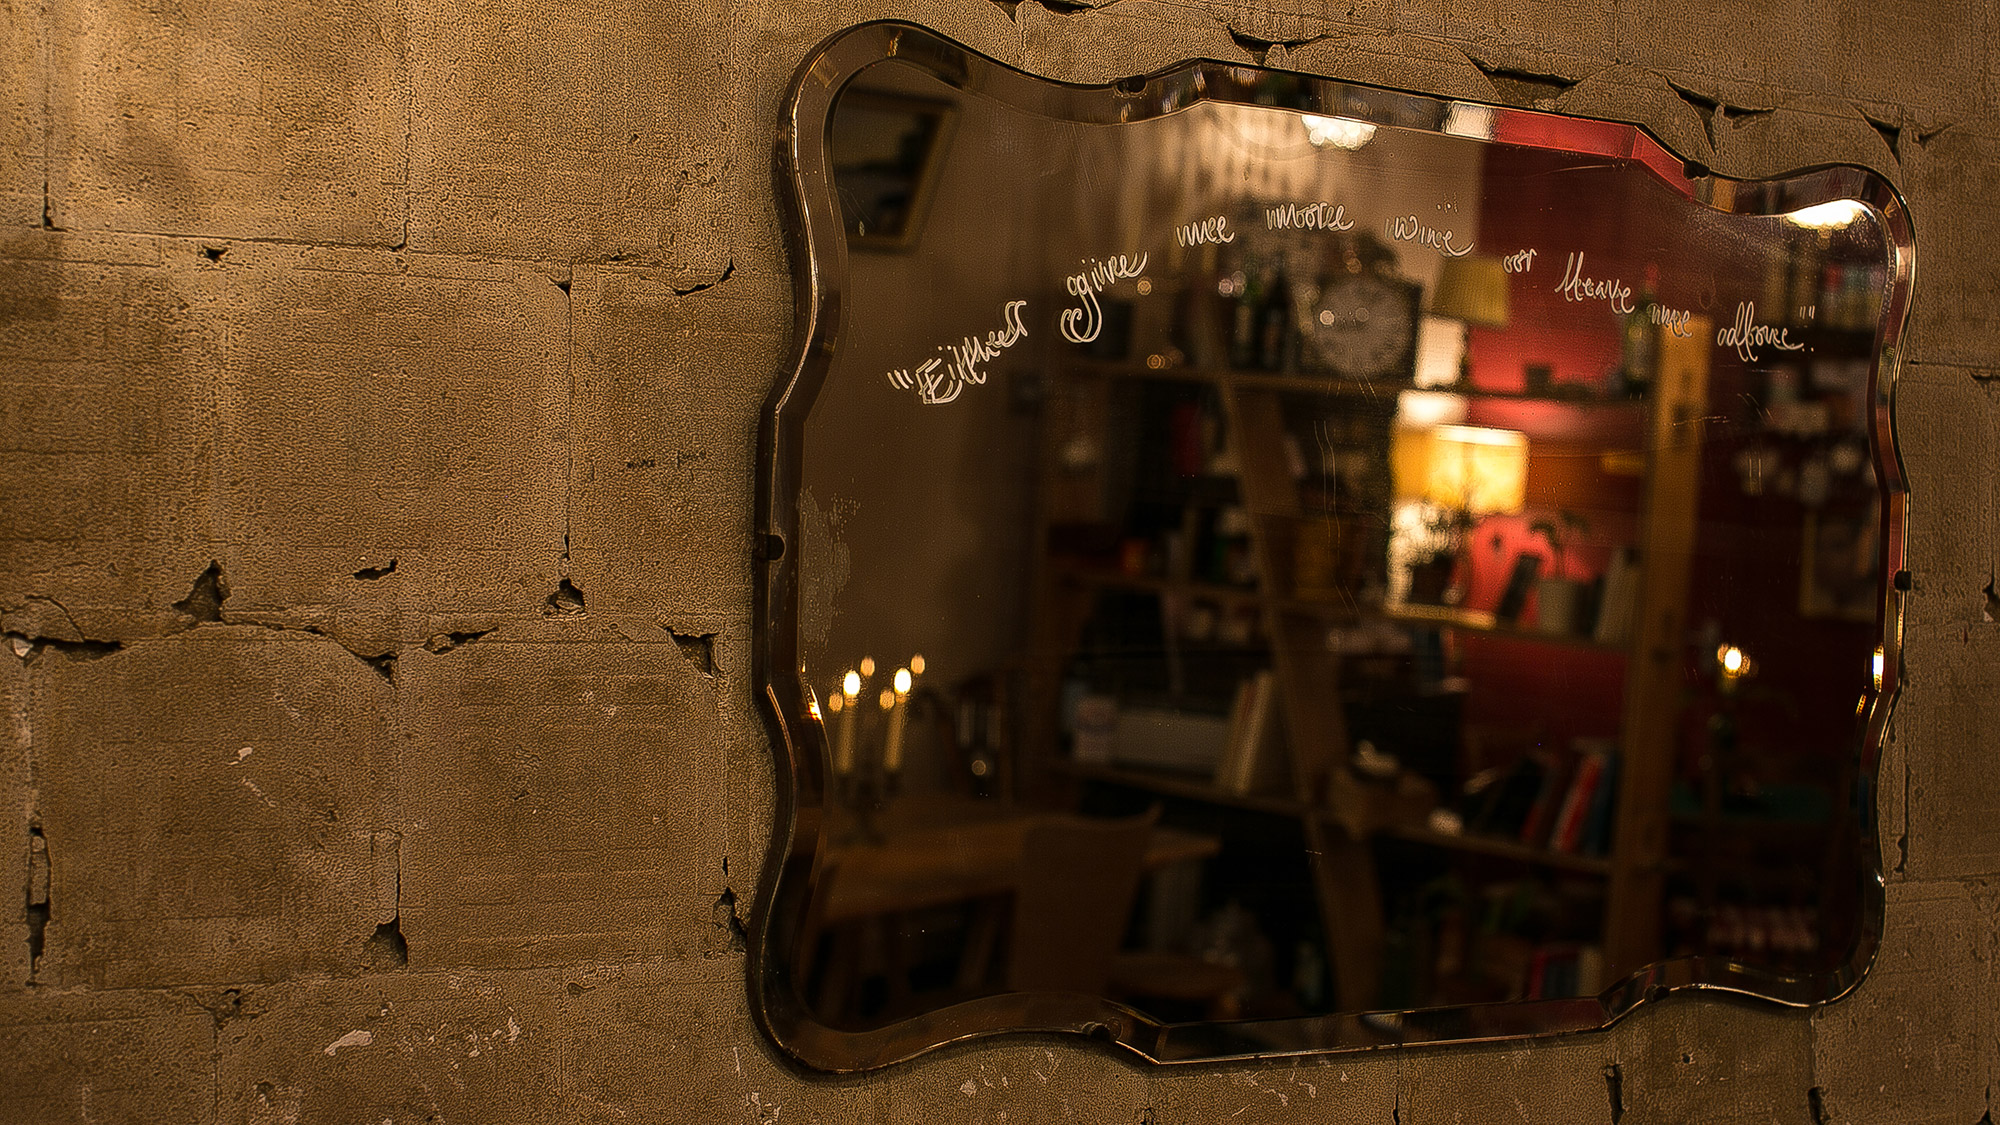 Vintage Mirror against exposed brick work